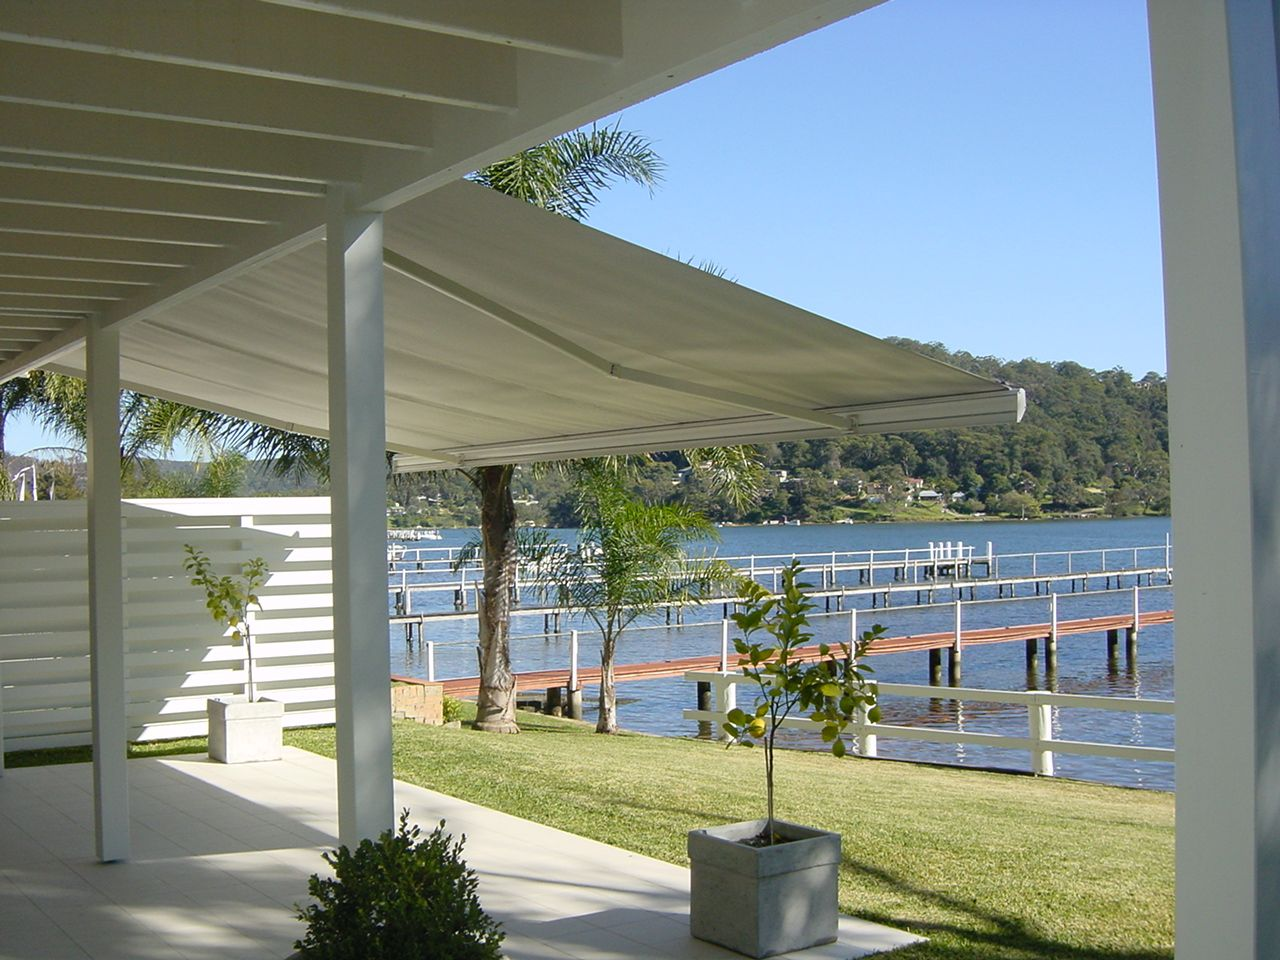 Laguna Folding Arm Awning